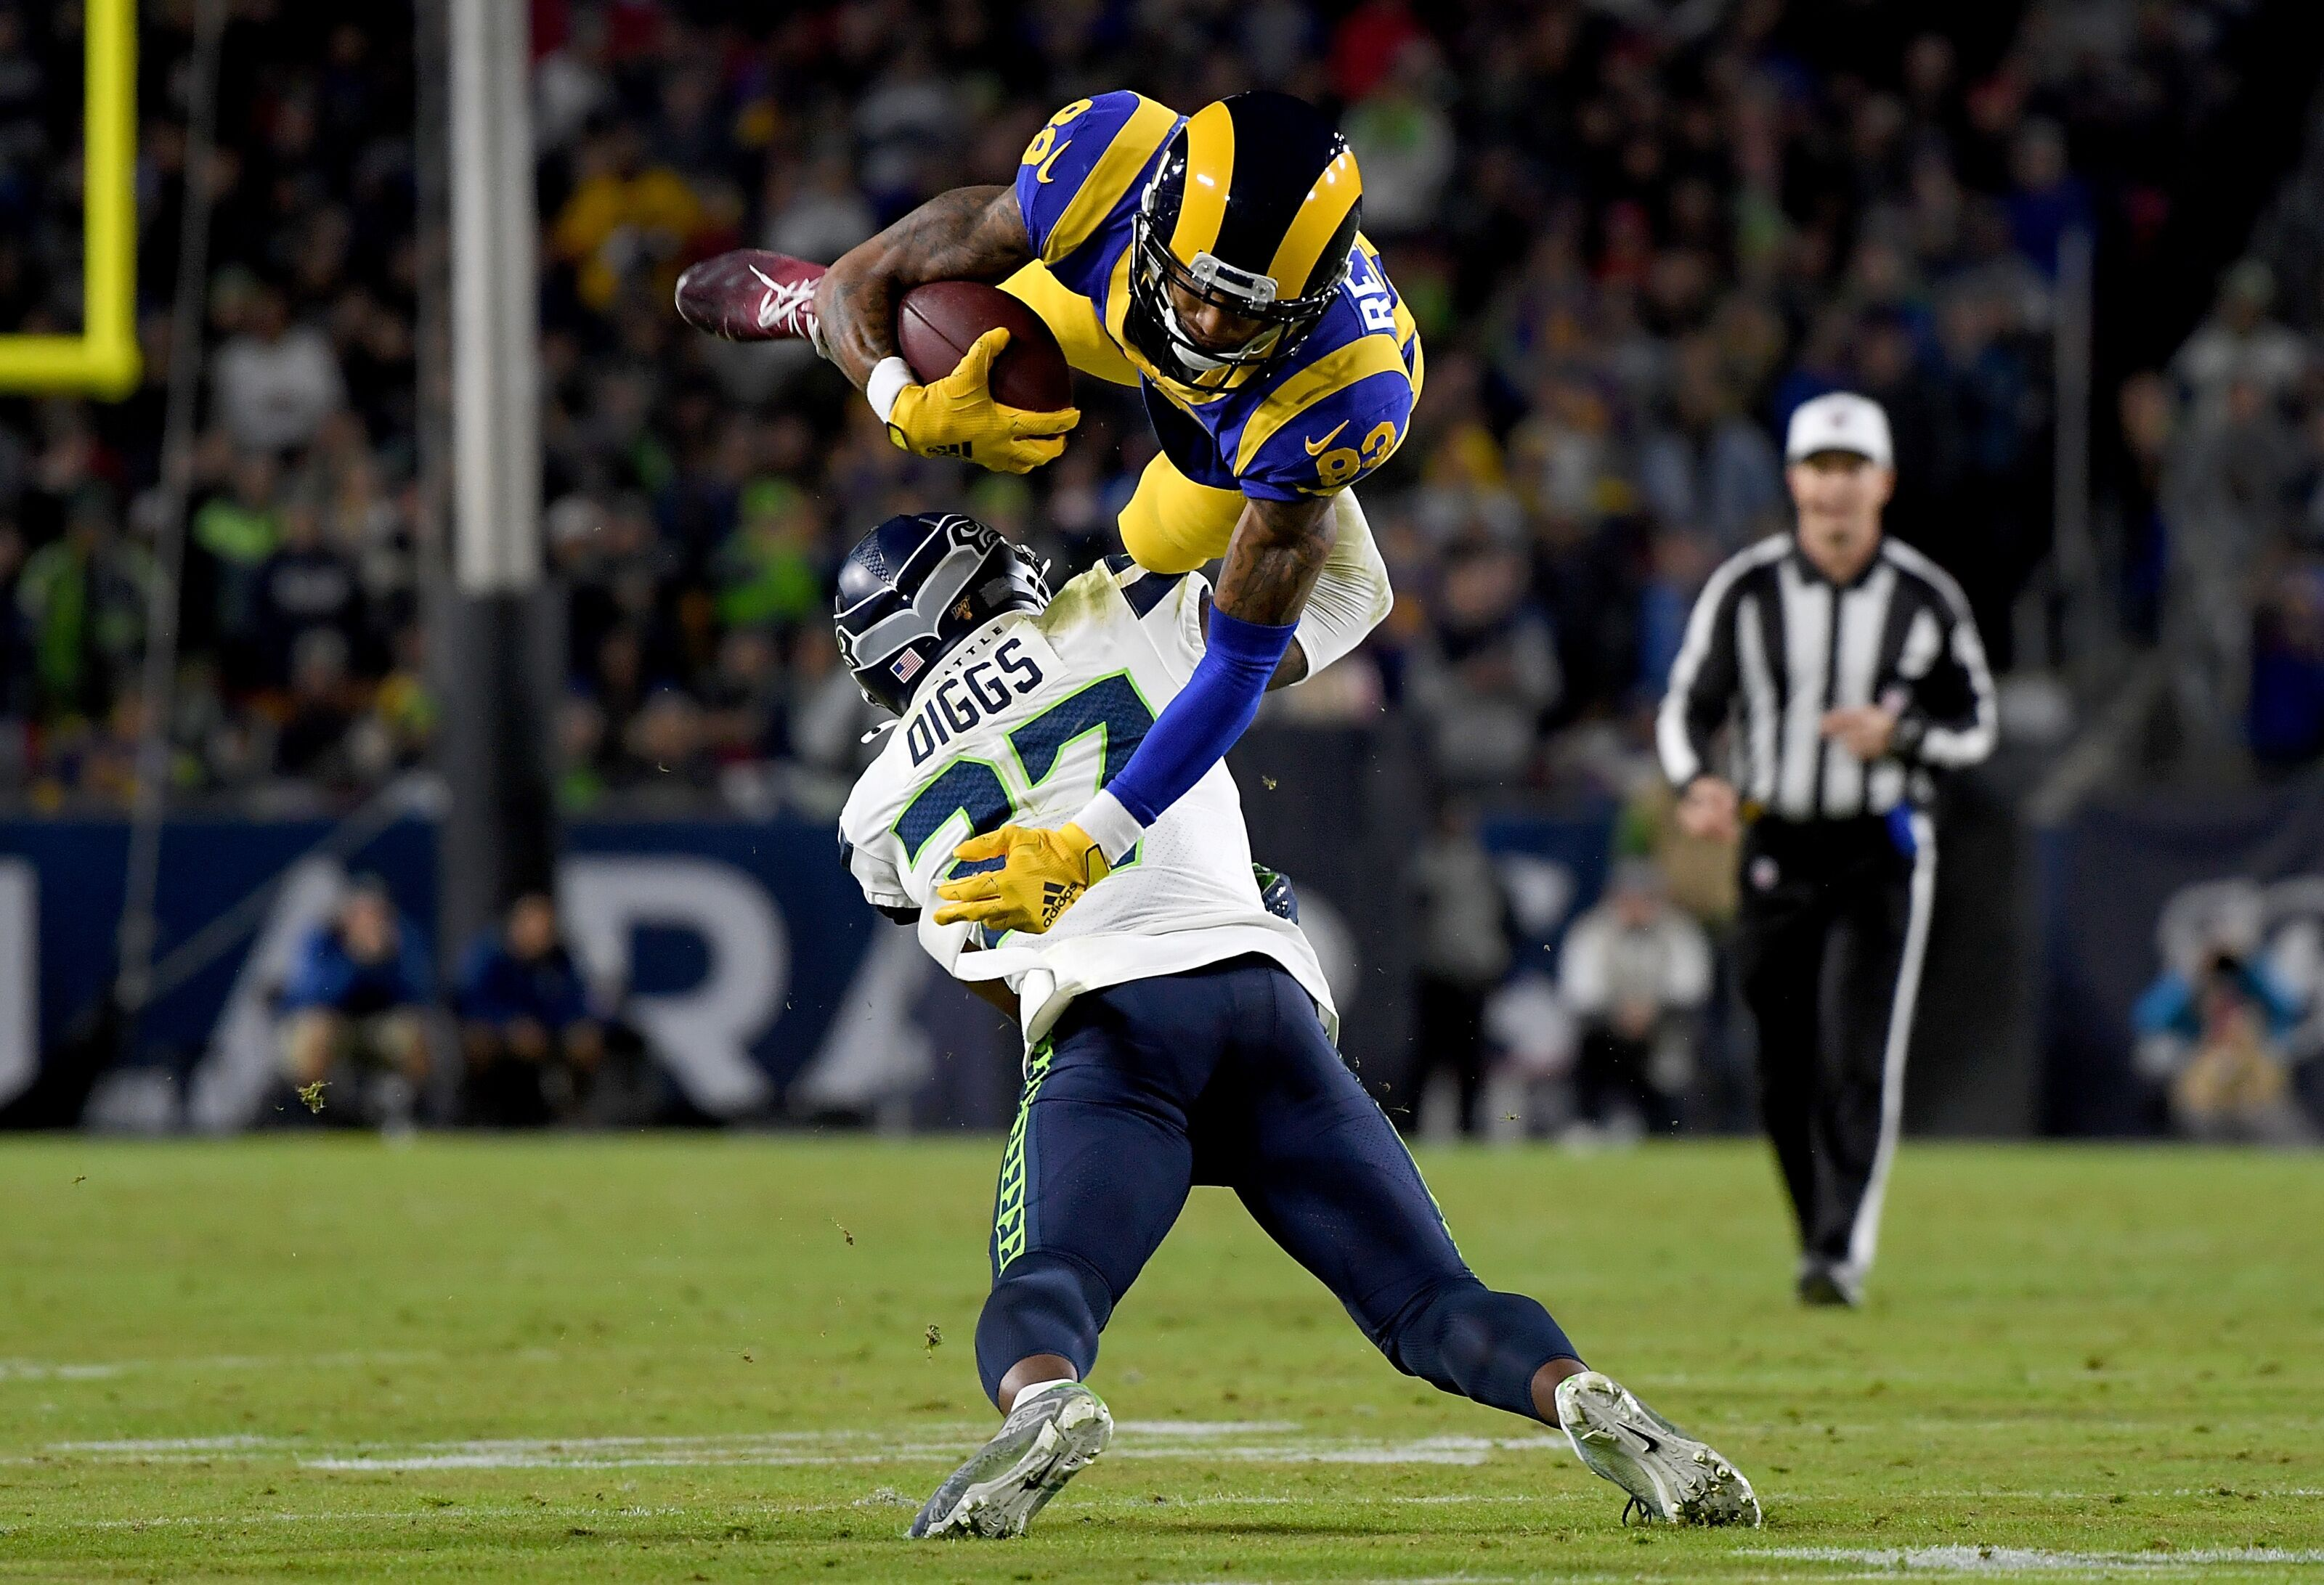 Seahawks MVP for game 13: they call me Mister Diggs